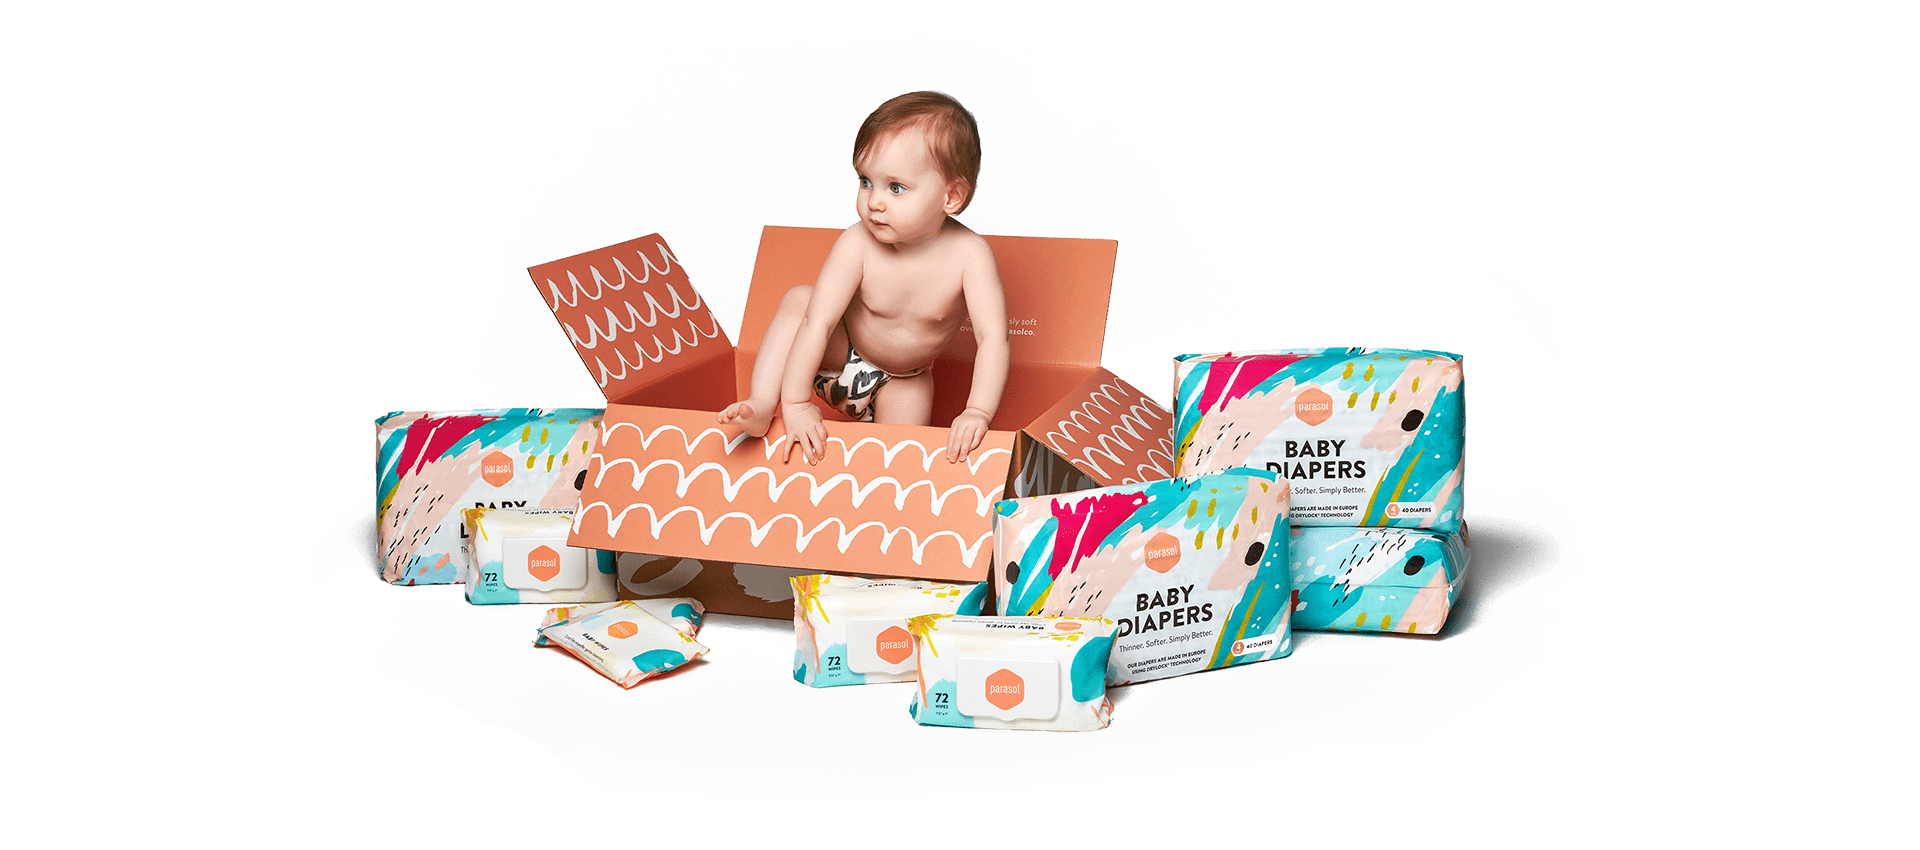 Parasol Co. Diaper Subscription Black Friday Coupon: 30% Off Subscriptions!